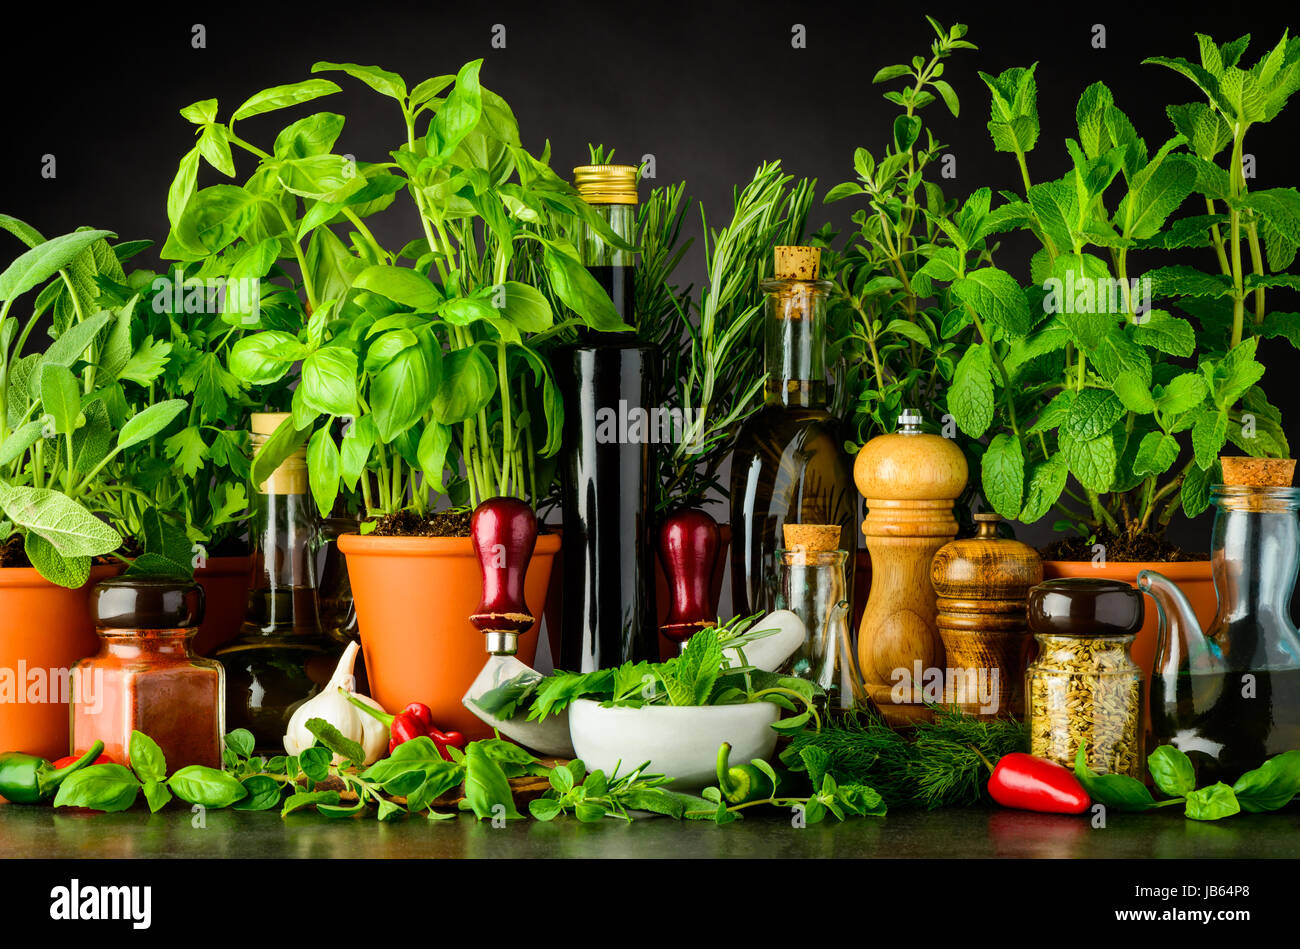 Sill Life with Cooking Ingredients, Fresh Green Basil and Parsley Herbs, Pestle and Mortar with Mezzaluna Herb Chopper - Stock Image